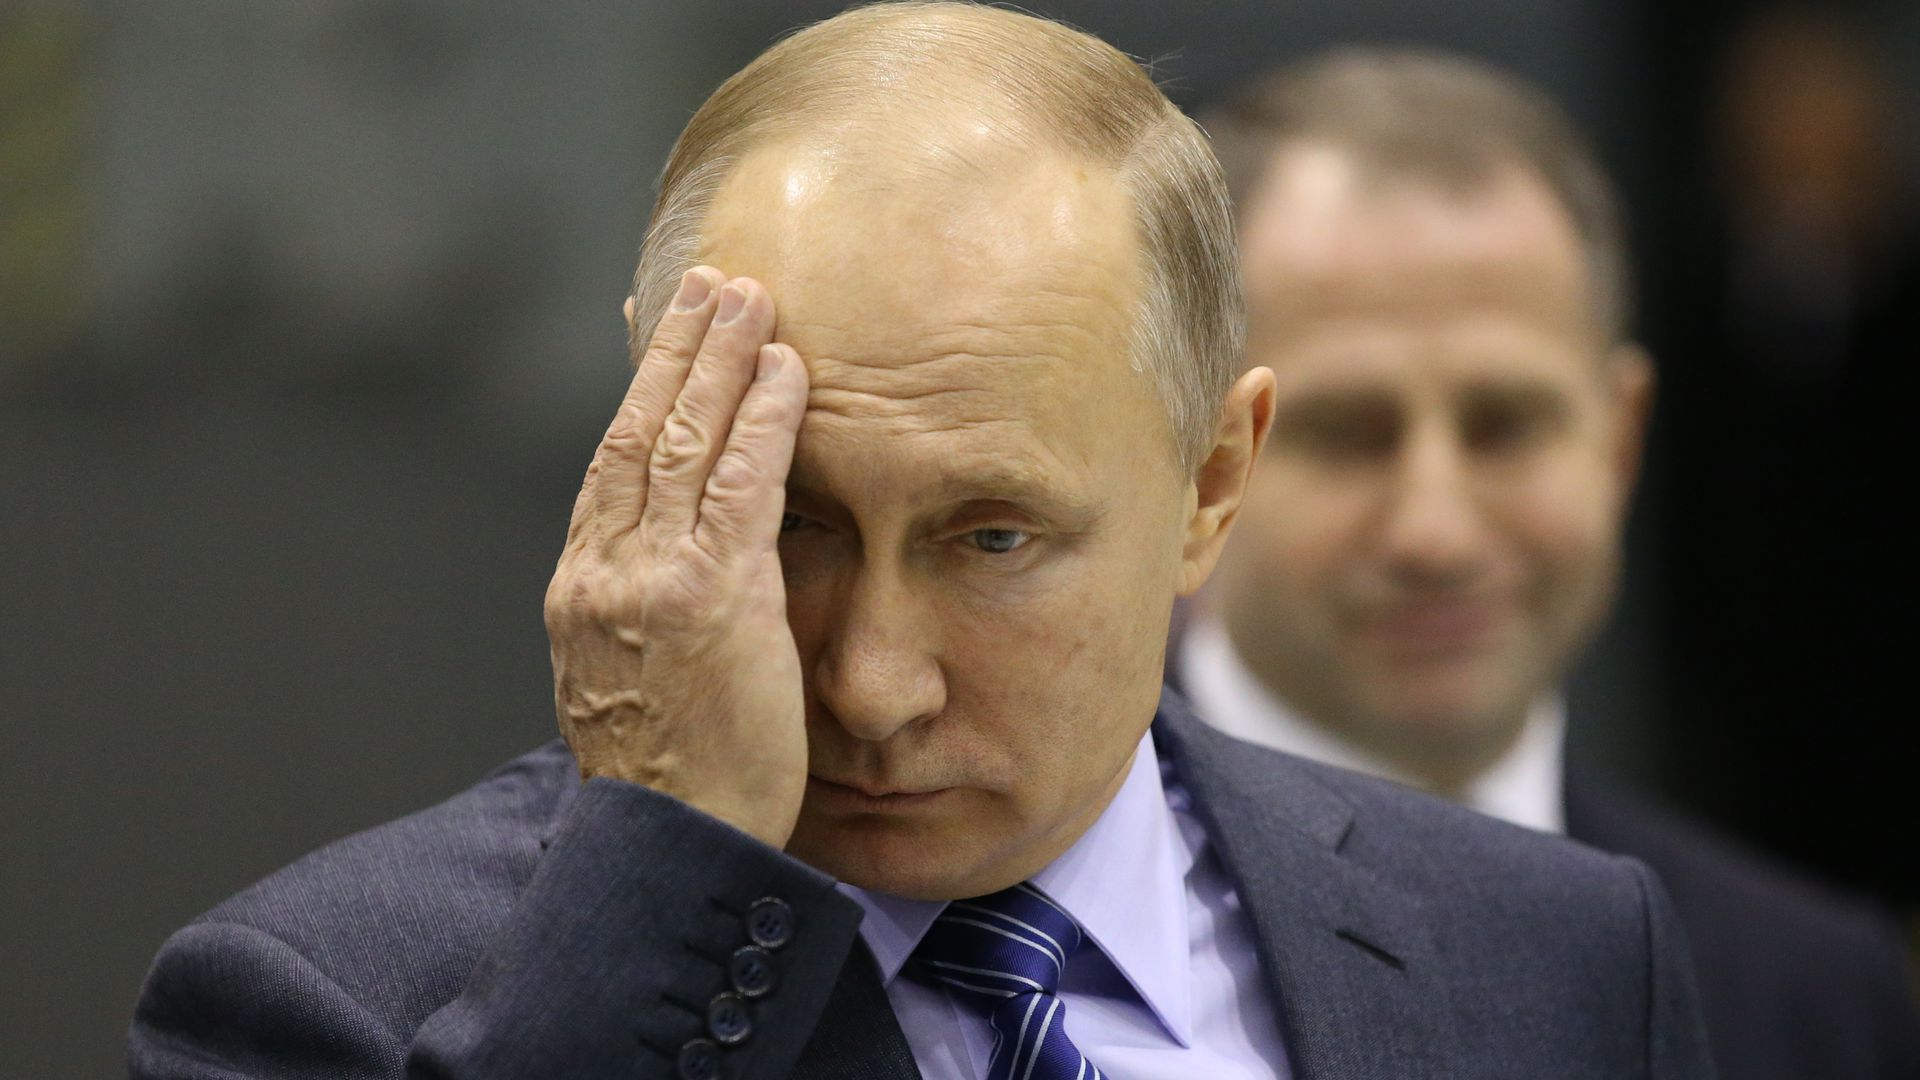 Vladimir Putin with his hand on his face